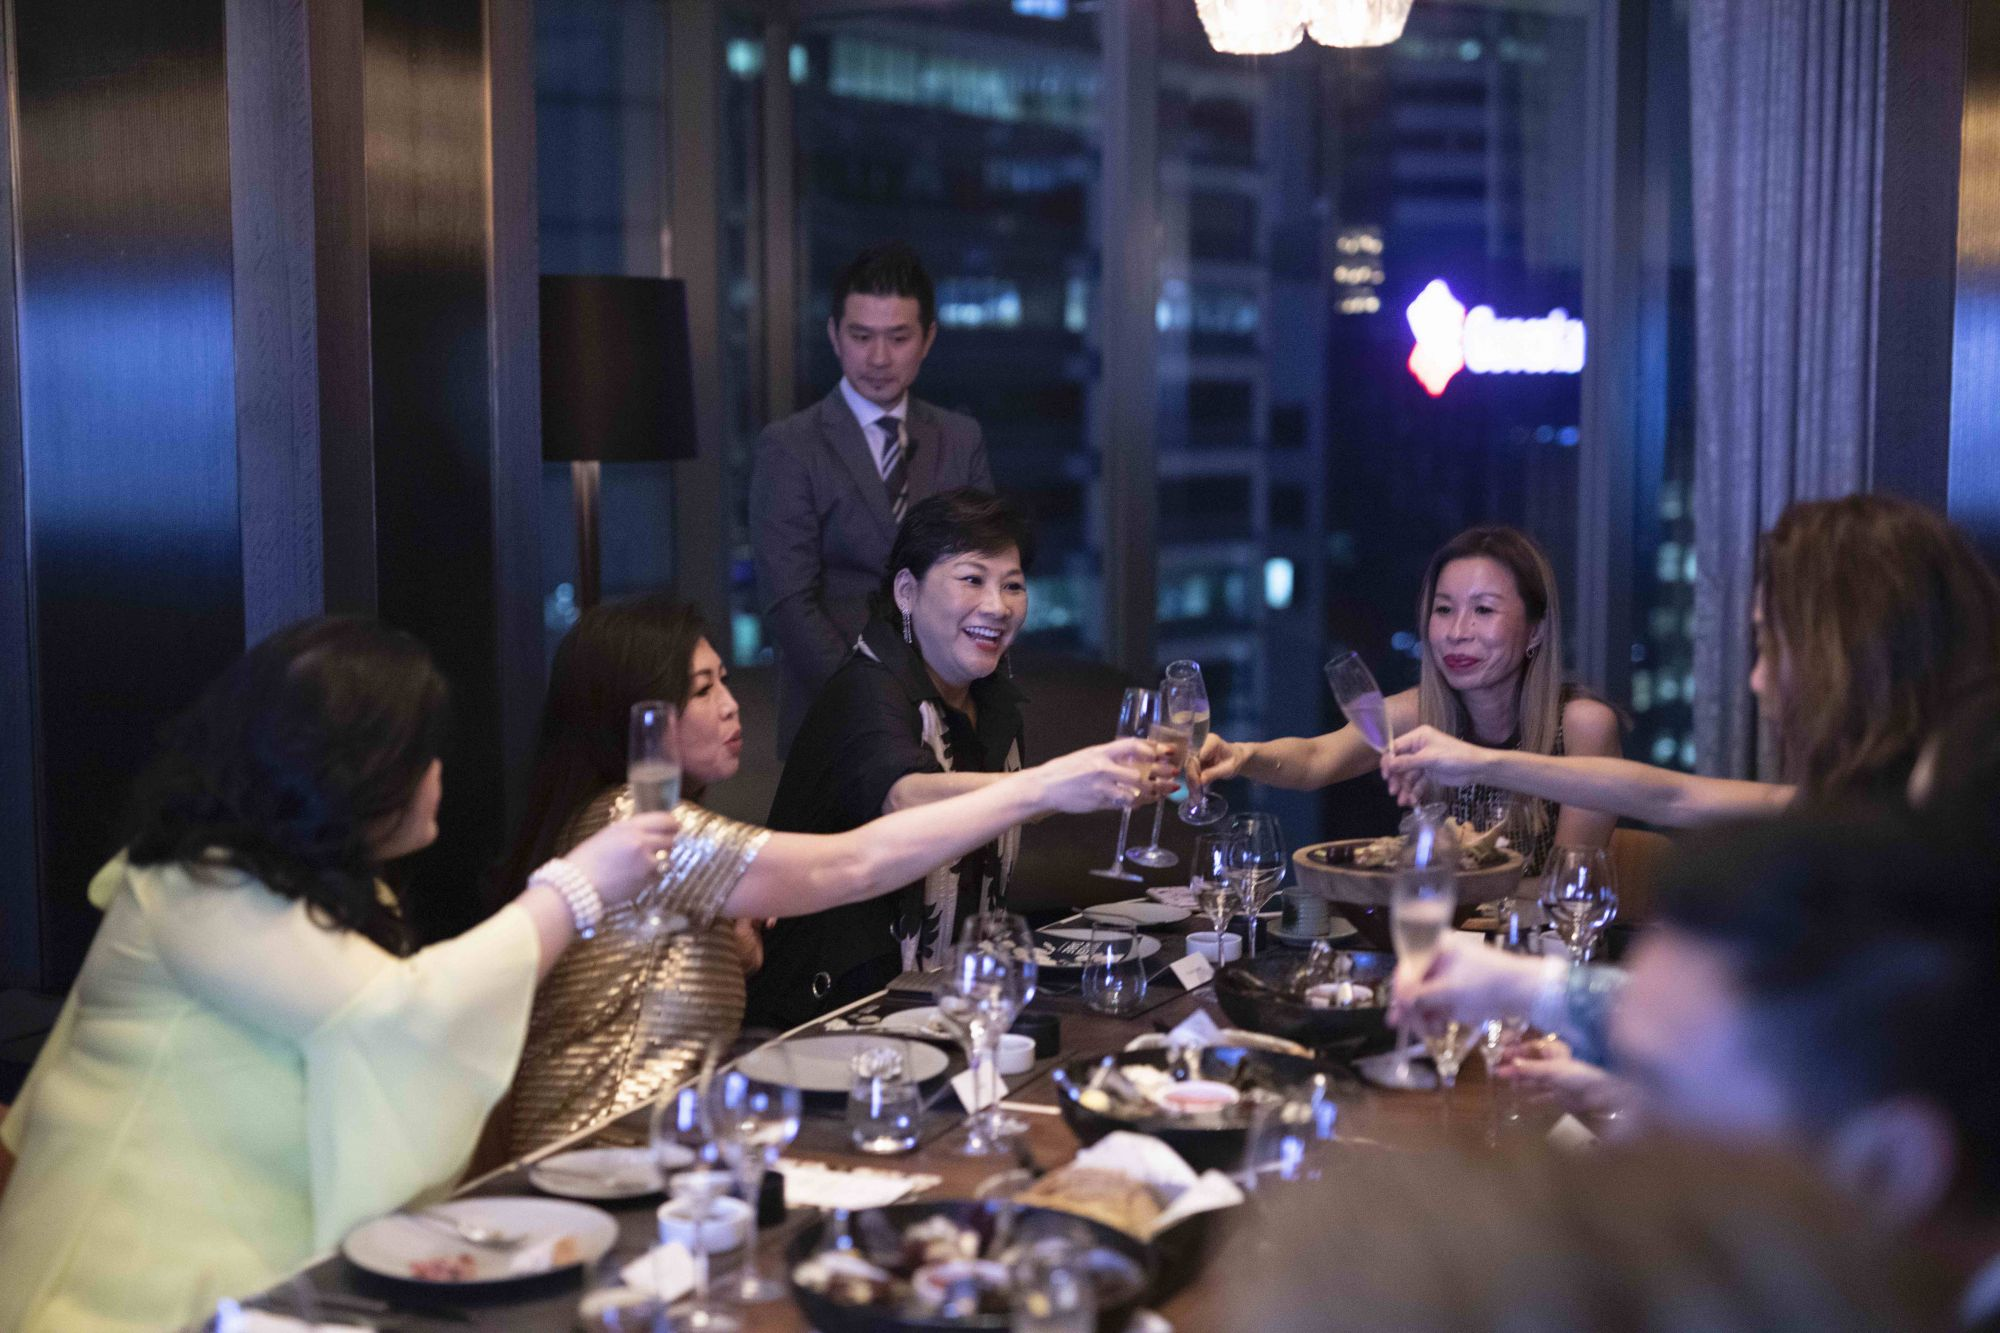 Singapore Tatler Thanks Readers Over Tatler Table At Vue With Great Food And A Spectacular View